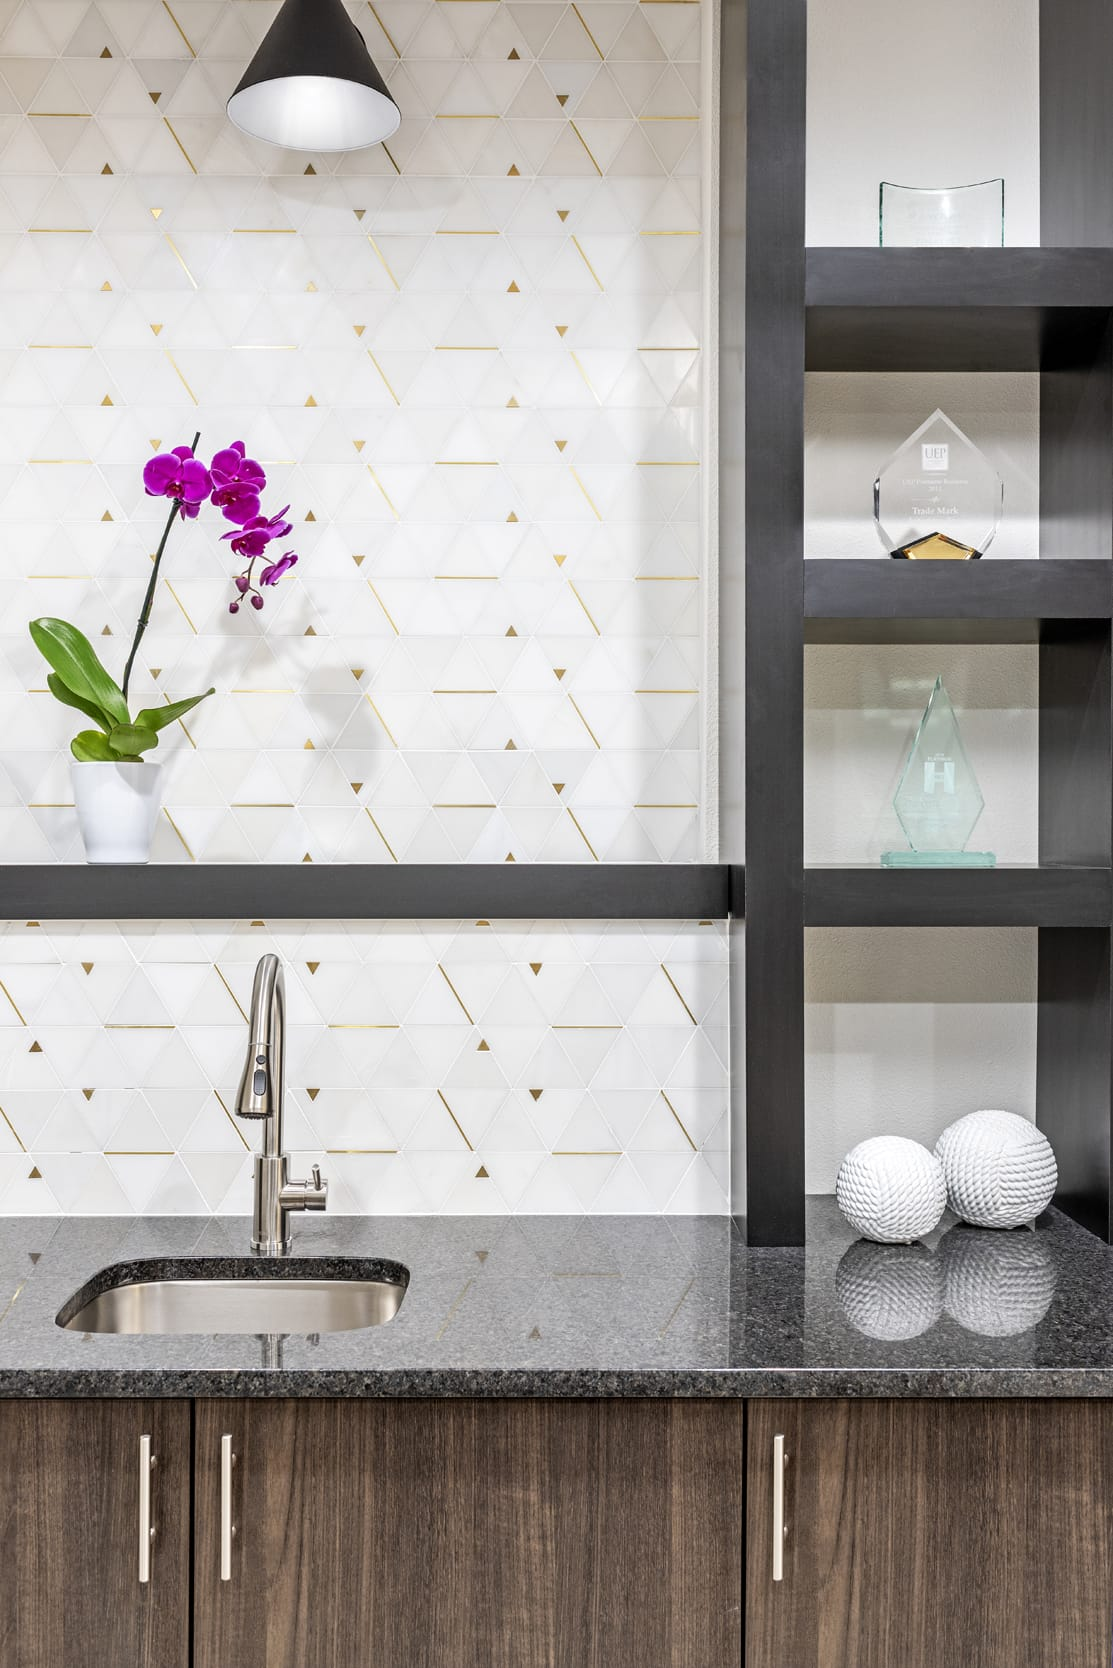 Ganite Countertop Matalic Sink Triangular Tiled With Gold Edges Purple Orchid